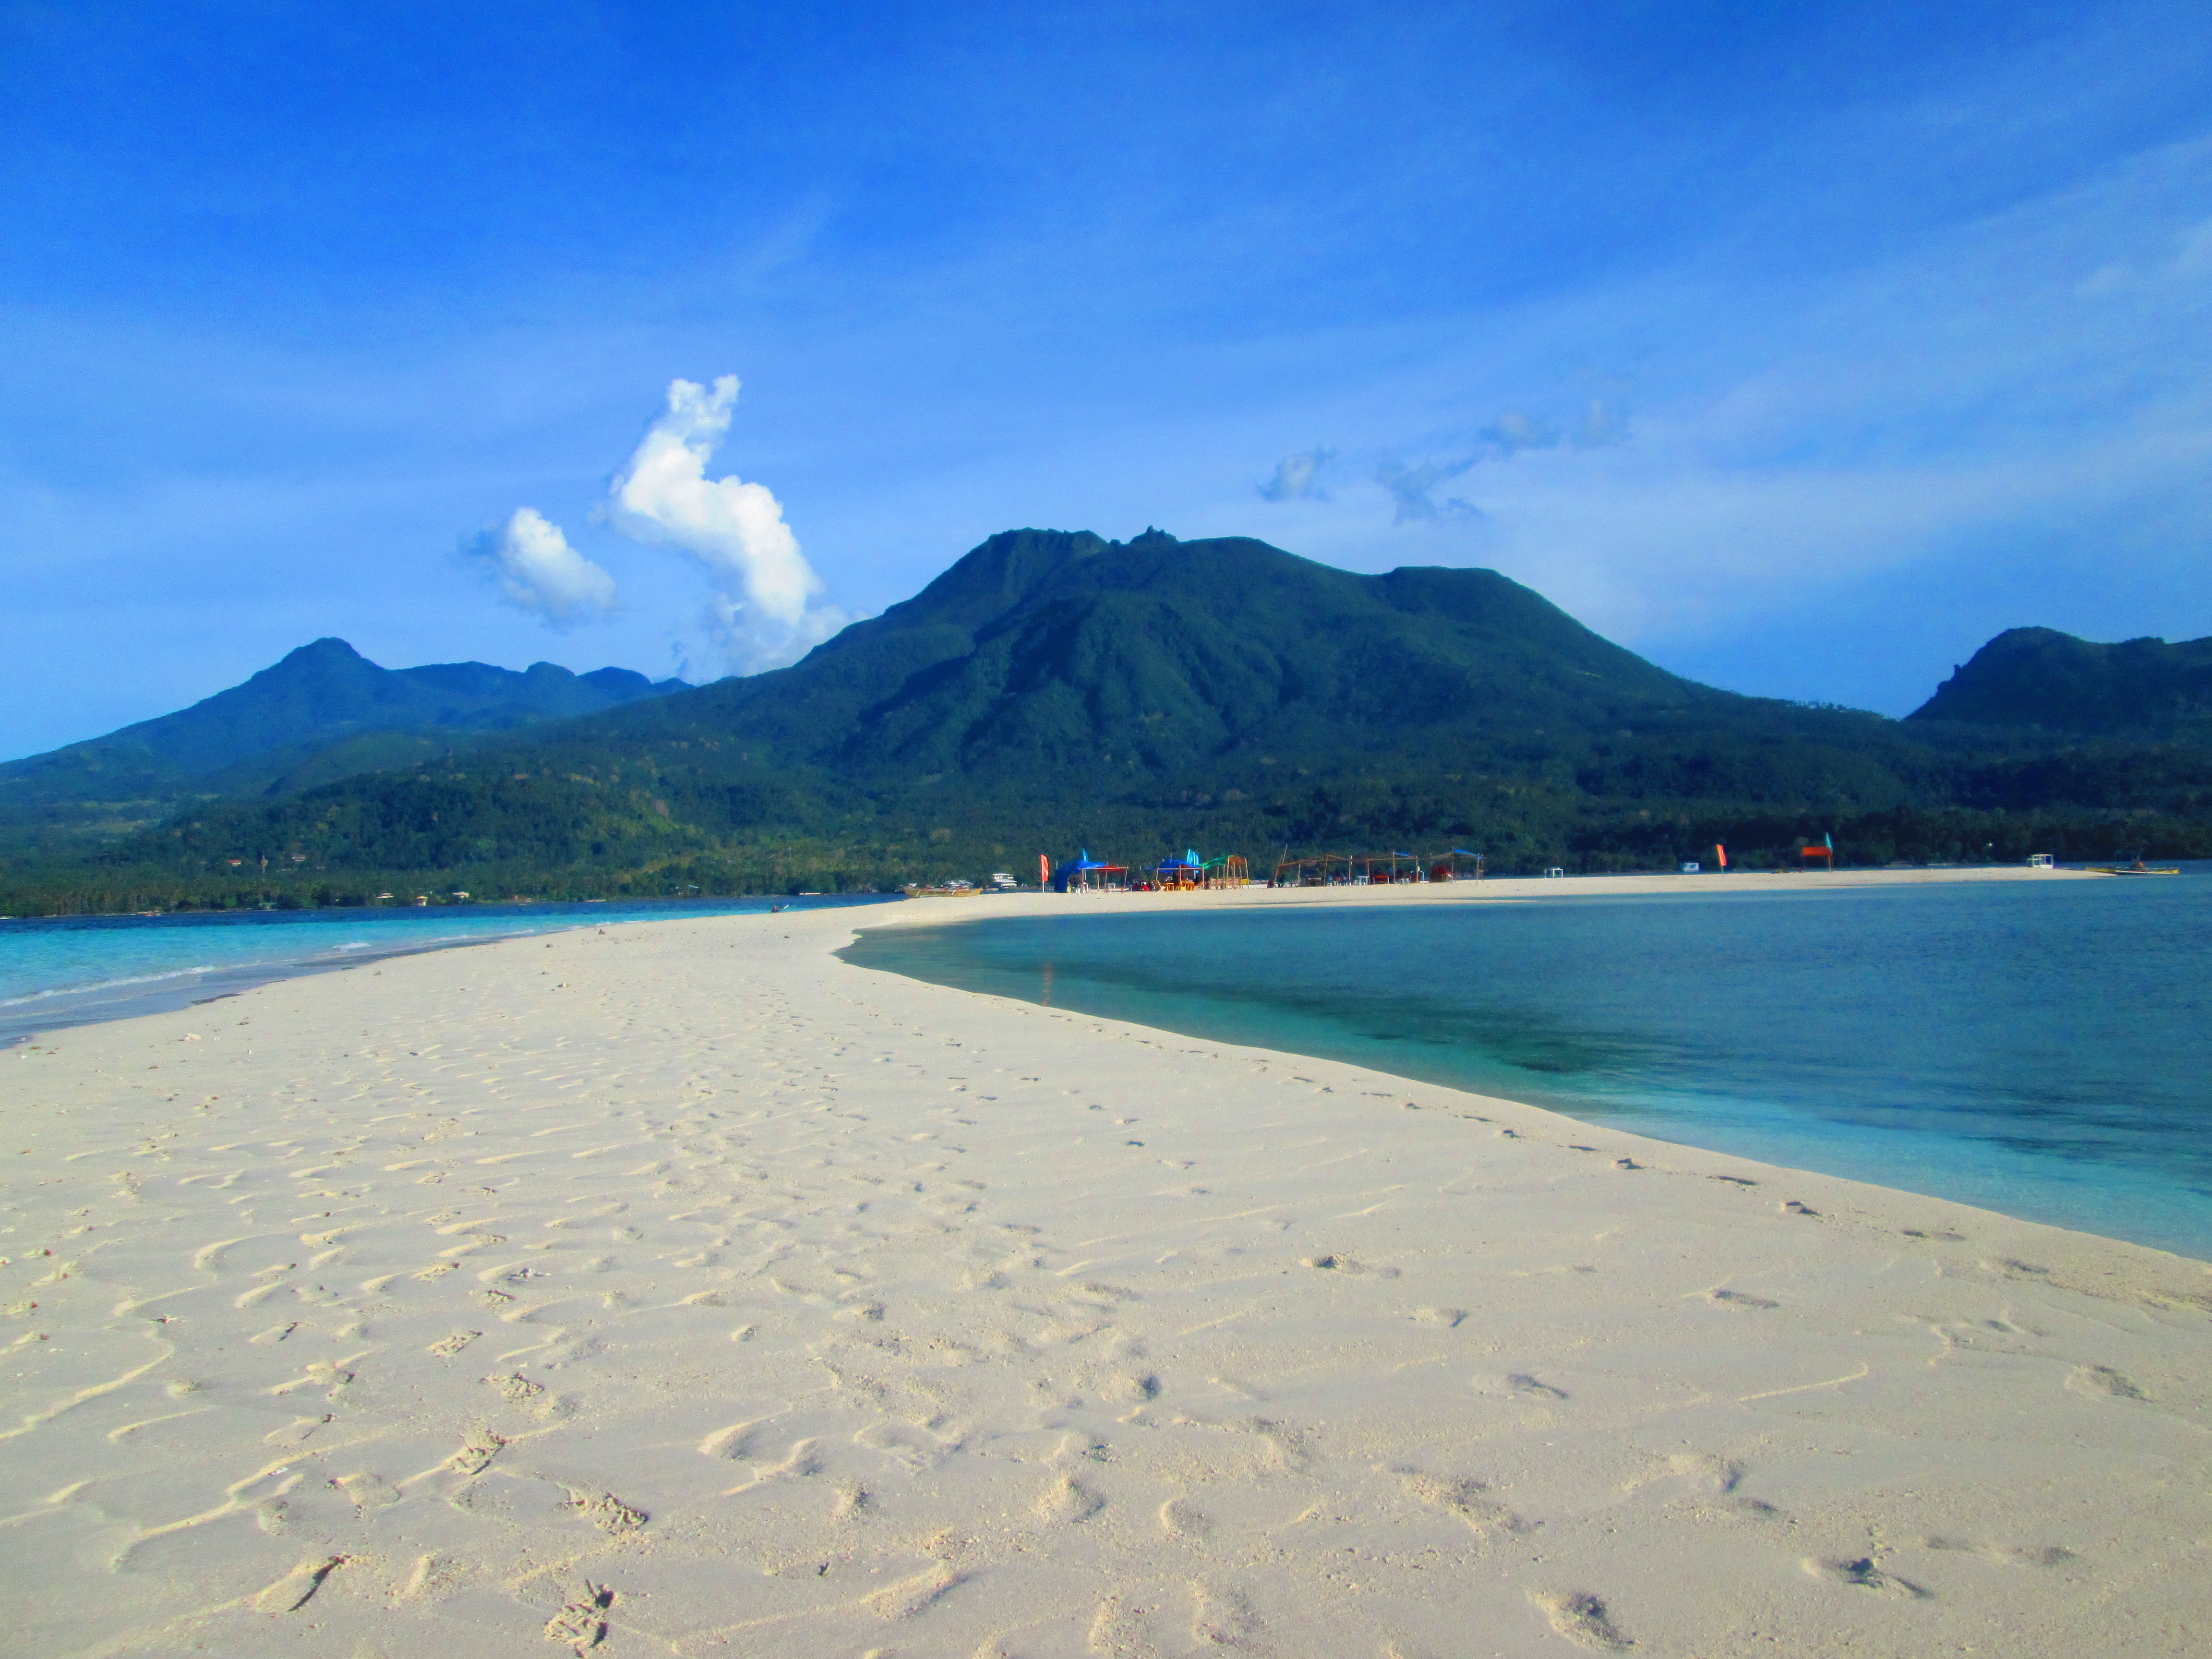 White Island Camiguin, Things to see in Camiguin island, Philippines (Part 2)